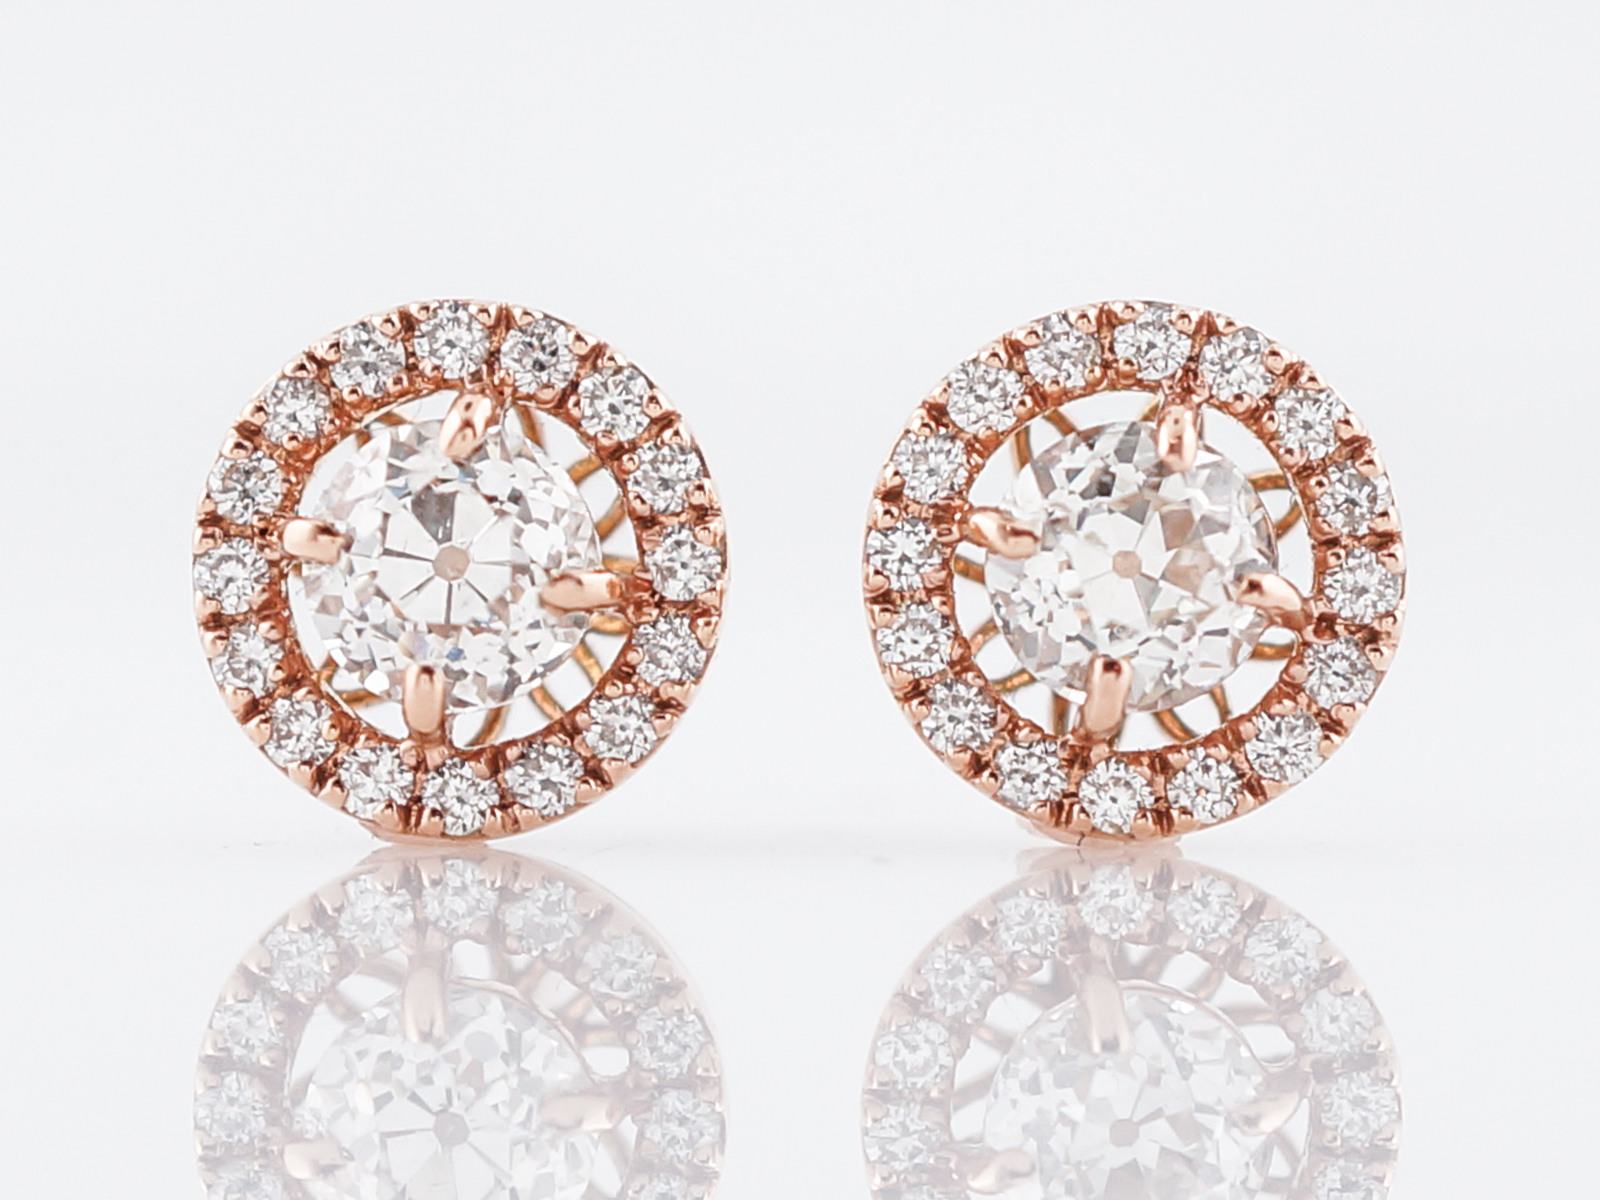 Modern Earrings 1.34 Old European Cut Diamonds in 14k Rose Gold-1